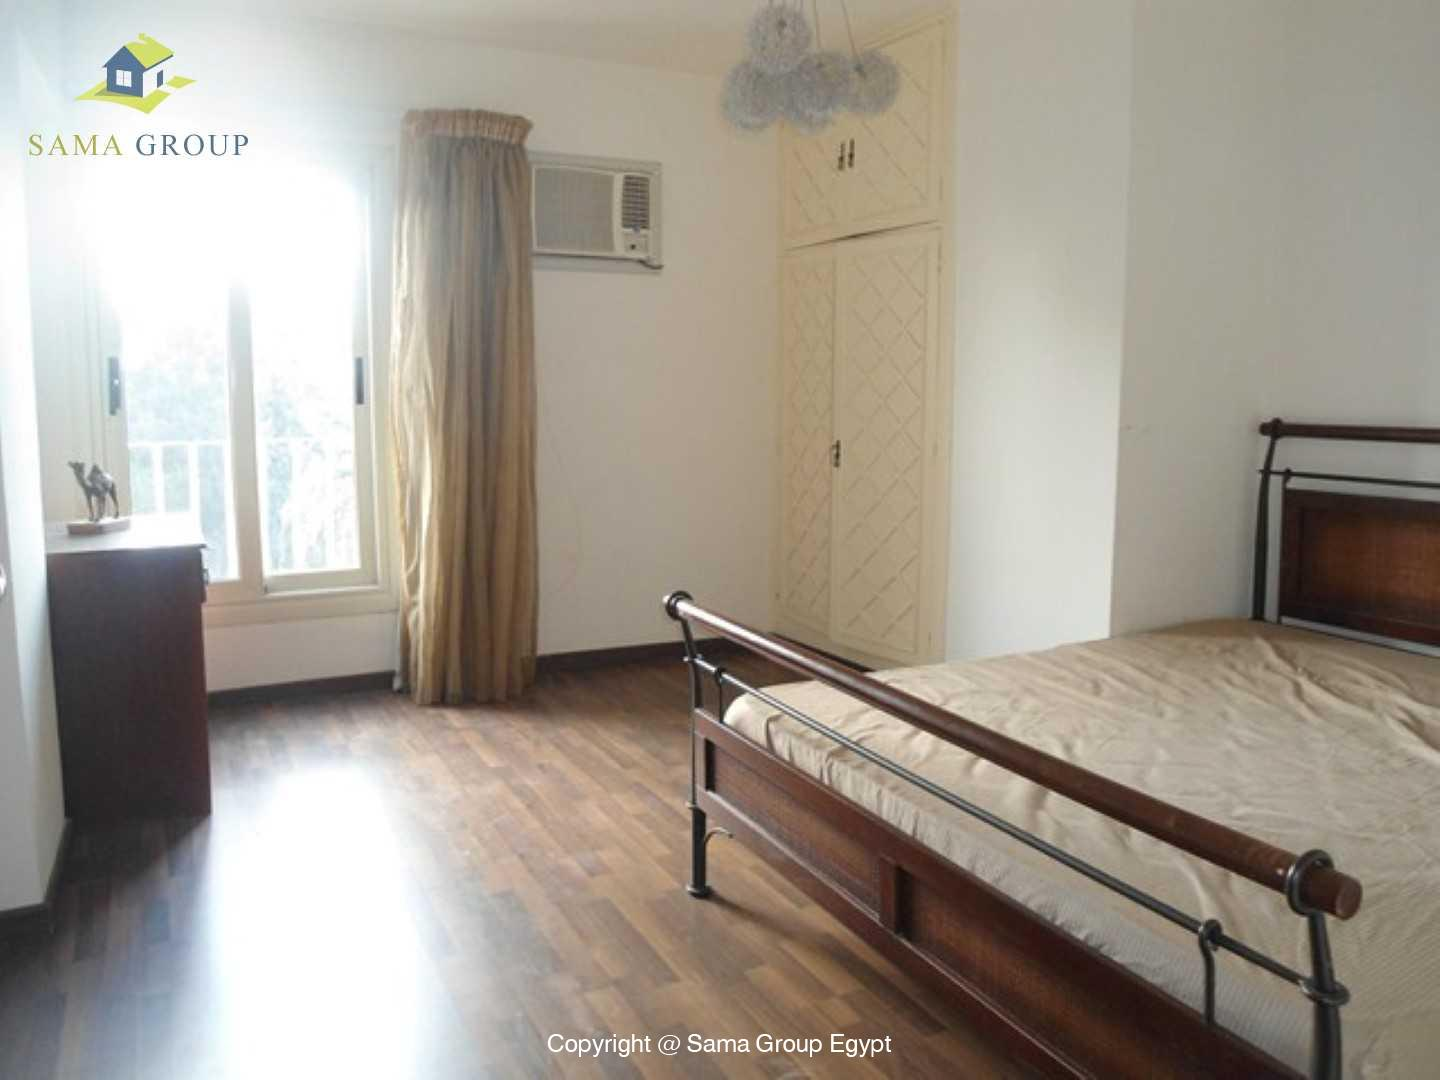 Apartment For Rent In Maadi Close To 9 Street,Modern Furnished,Apartment NO #12